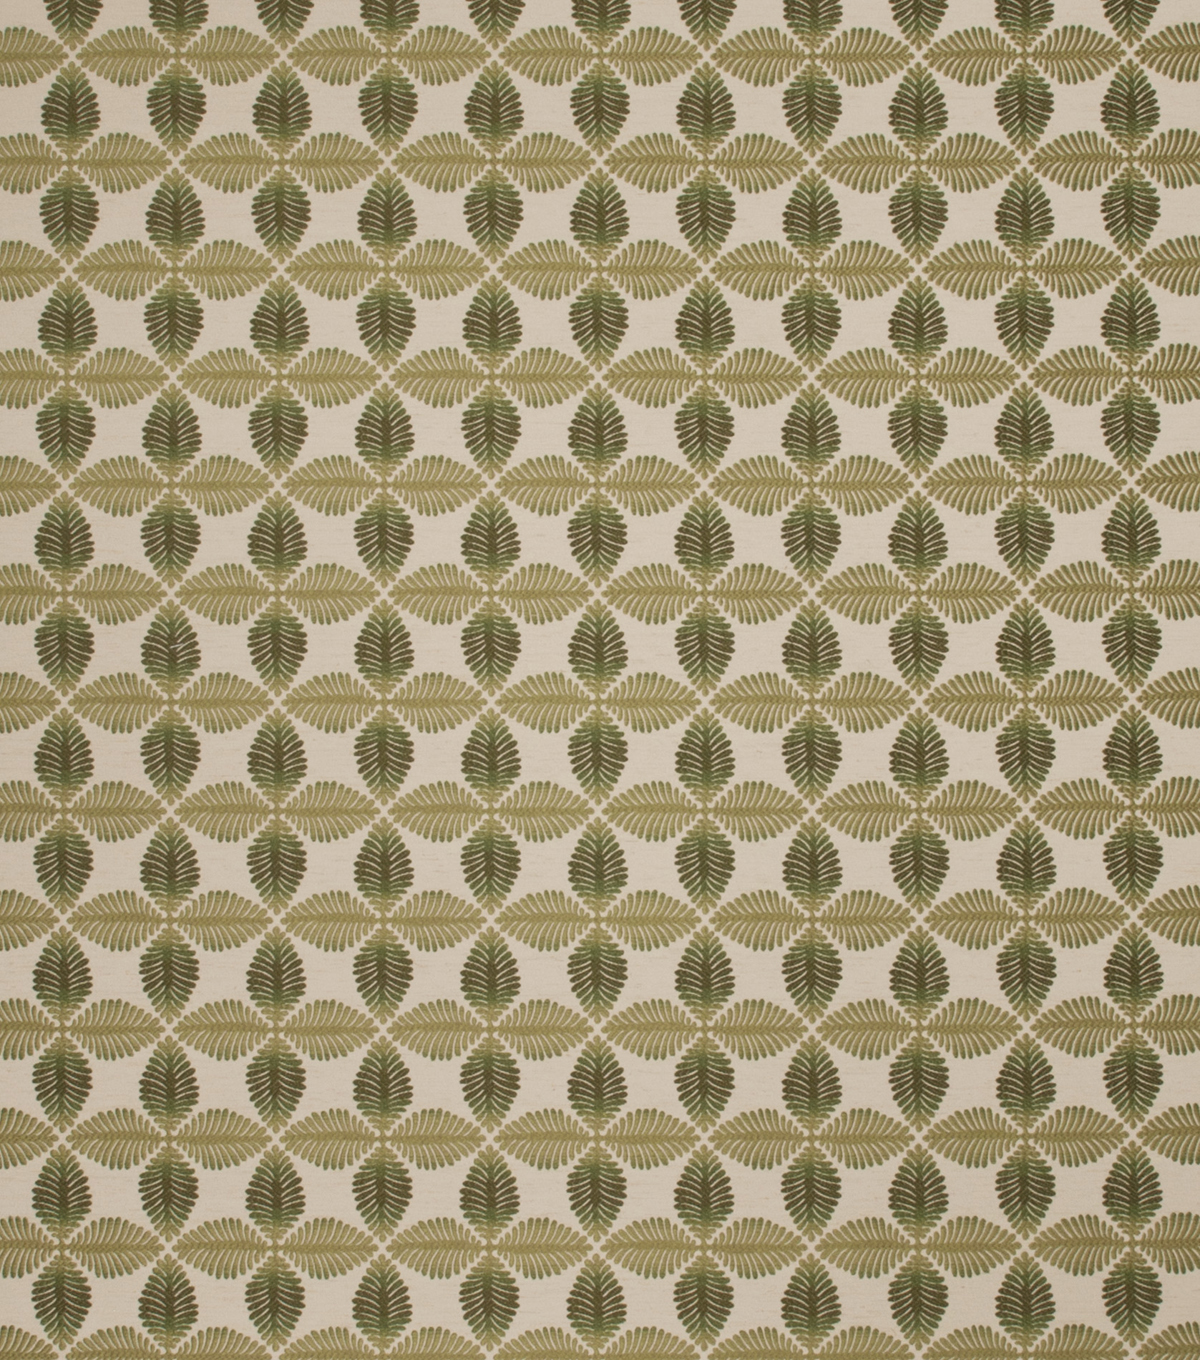 Conran Leaf Fern Swatch